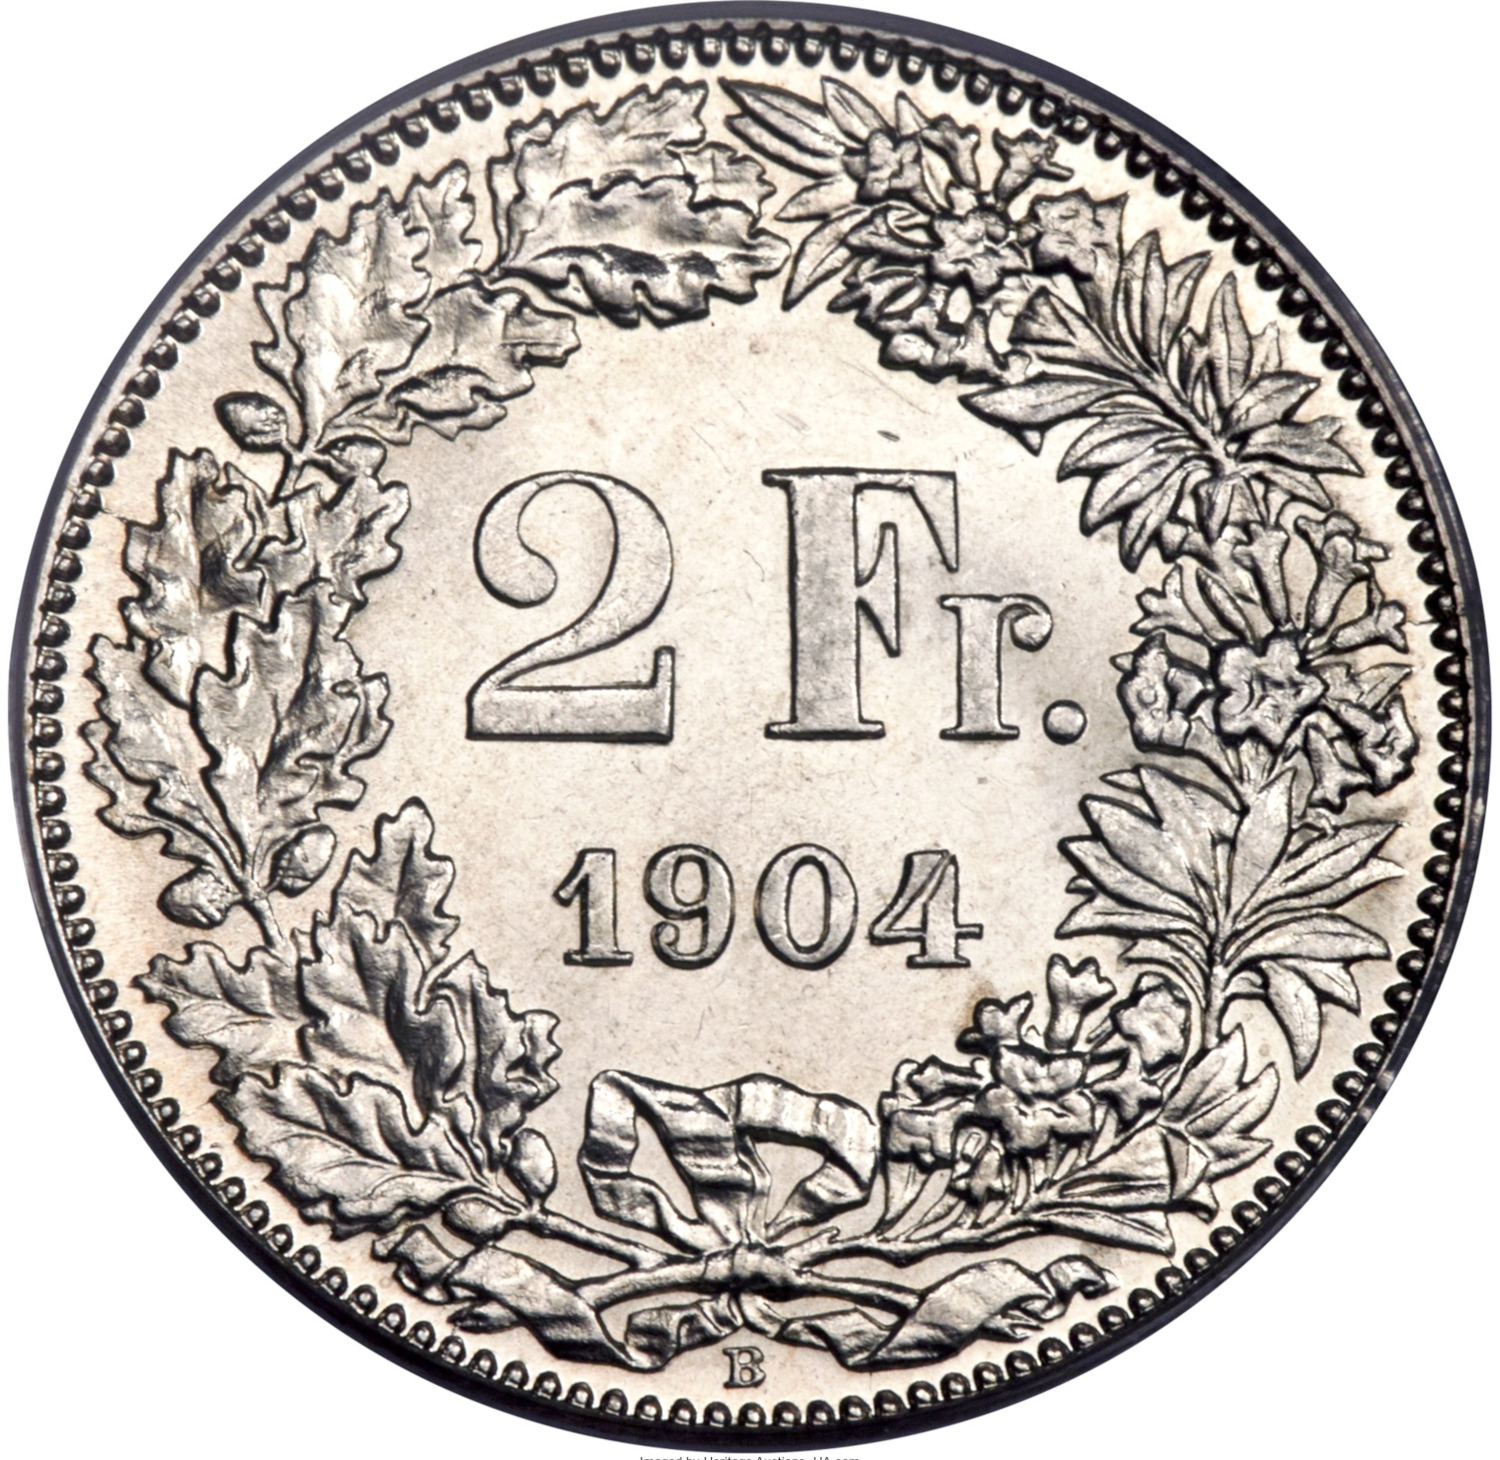 Two Francs, Silver: Photo Switzerland 1904-B 2 francs